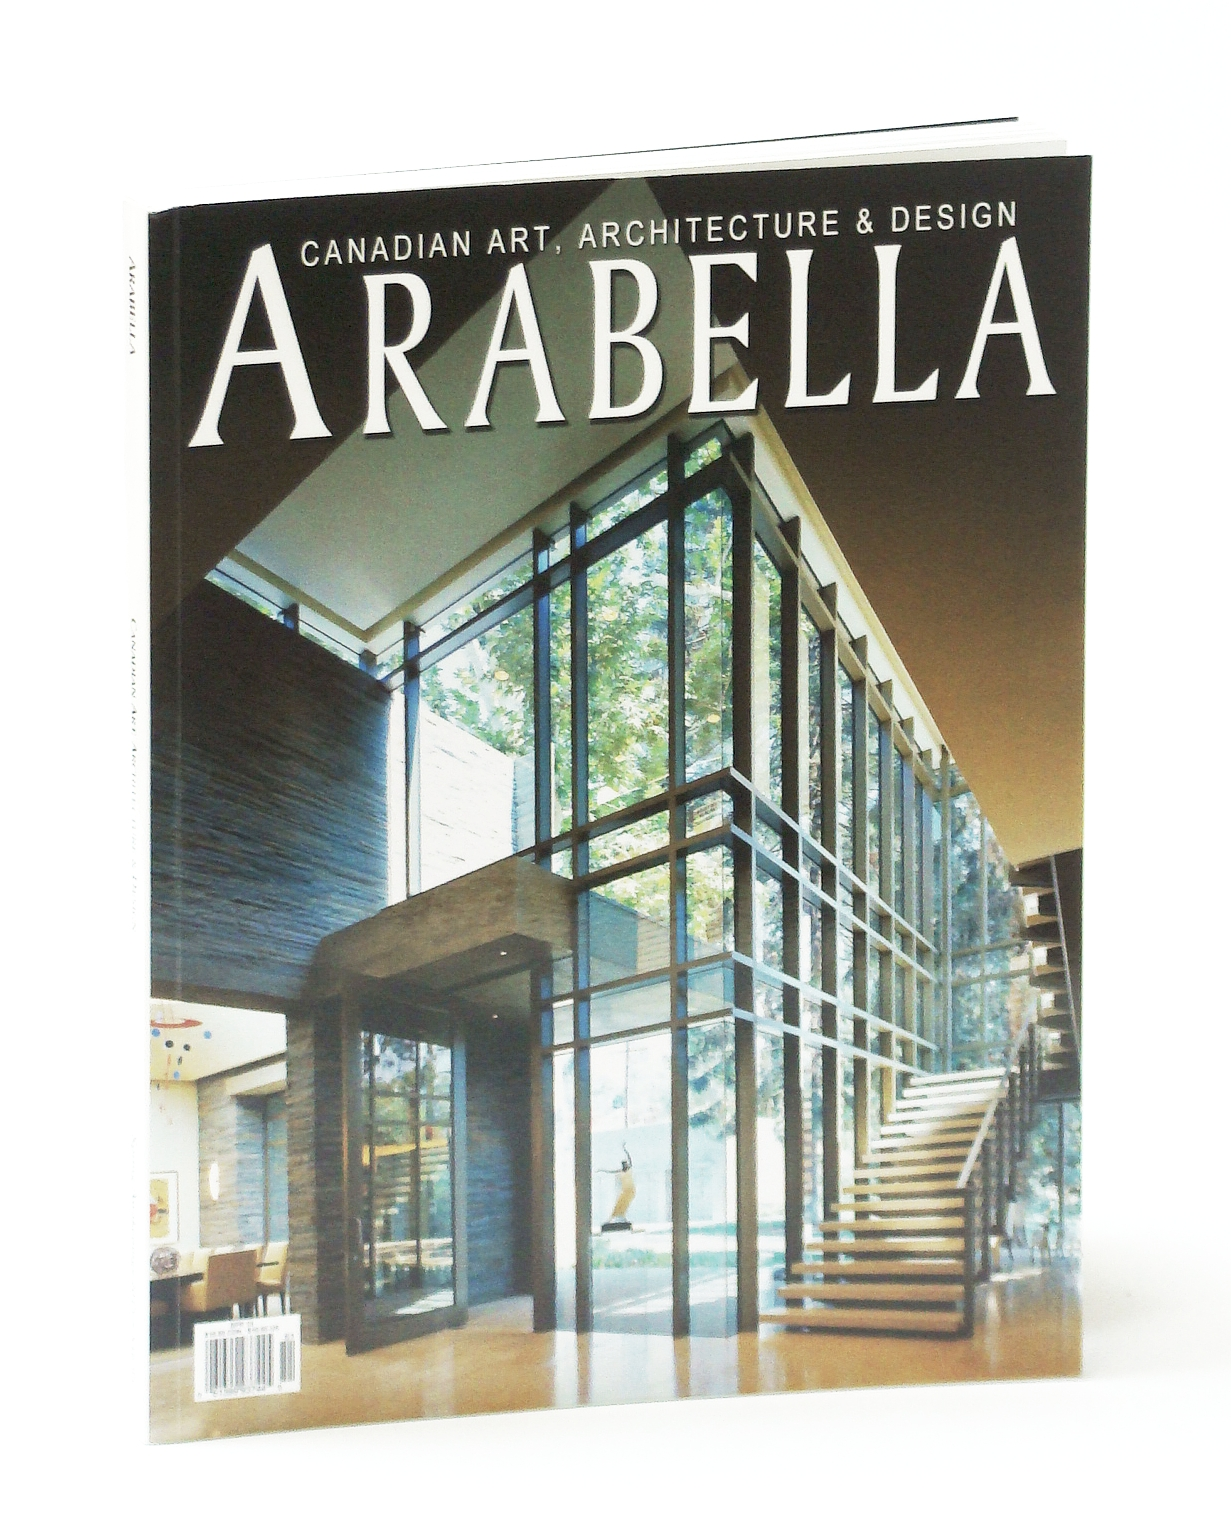 Image for Arabella (Magazine) - Canadian Art, Architecture & Design, Volume 8, Issue 1, Spring Awakenings 2015